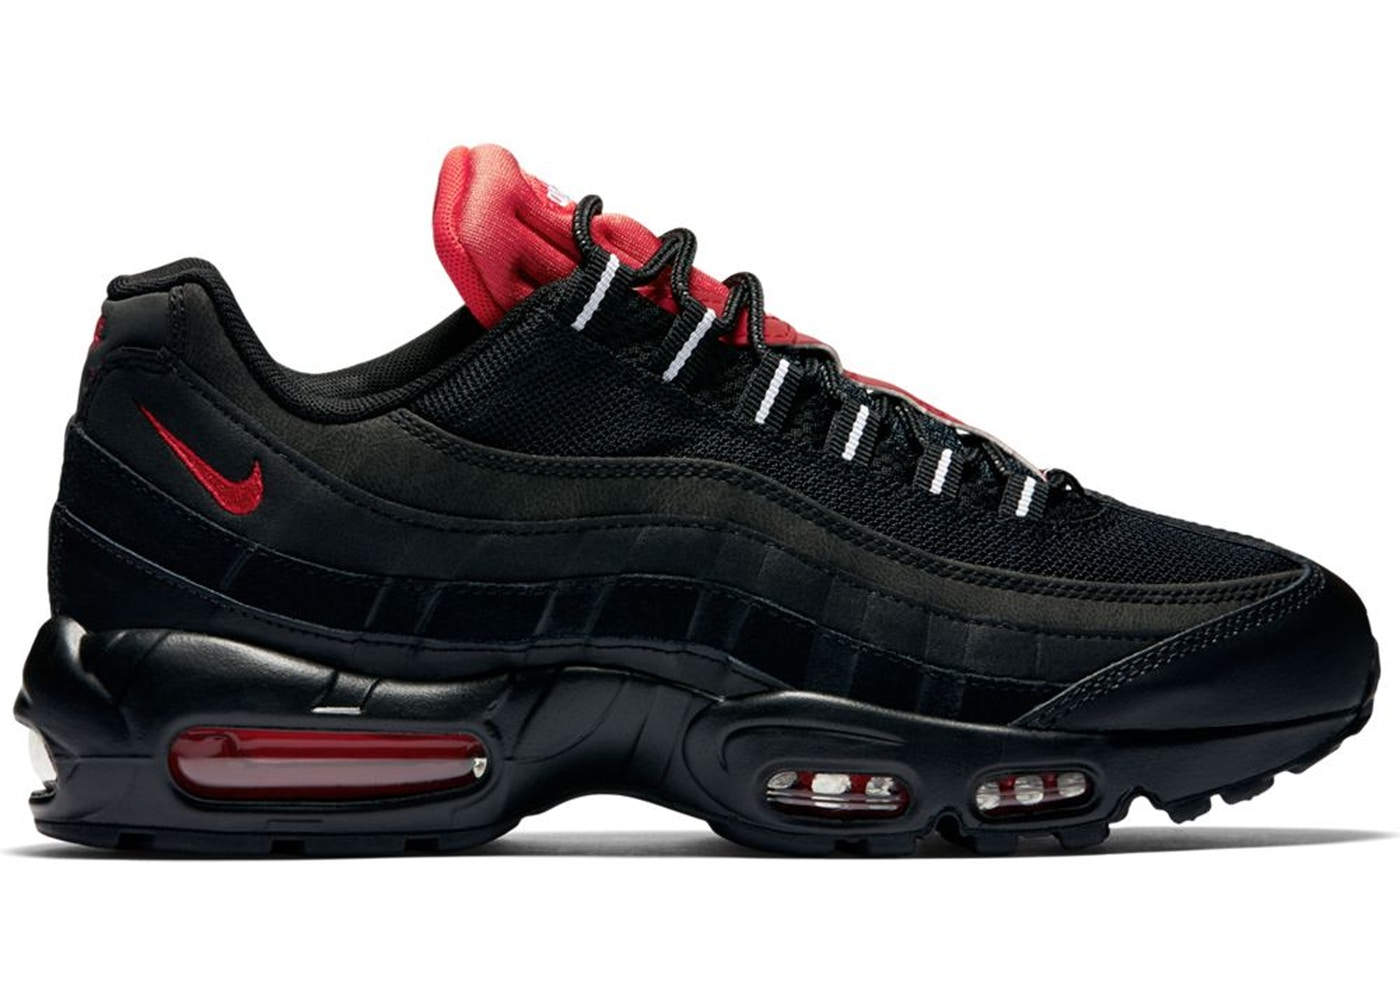 competitive price 8eb82 a7c1b Air Max 95 Black Challenge Red - 749766-016